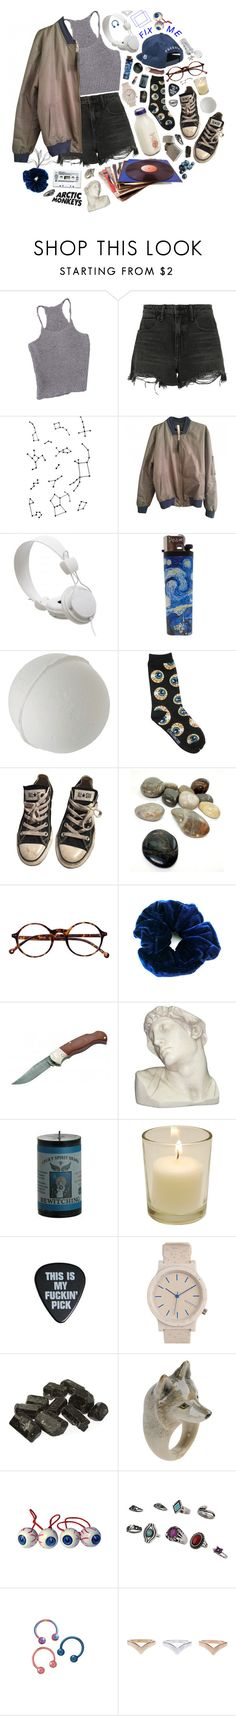 """178"" by shelbyo3o ❤ liked on Polyvore featuring Alexander Wang, WeSC, Converse, Retrò, Böker, House Parts, Topshop, Nach and Kreepsville 666"